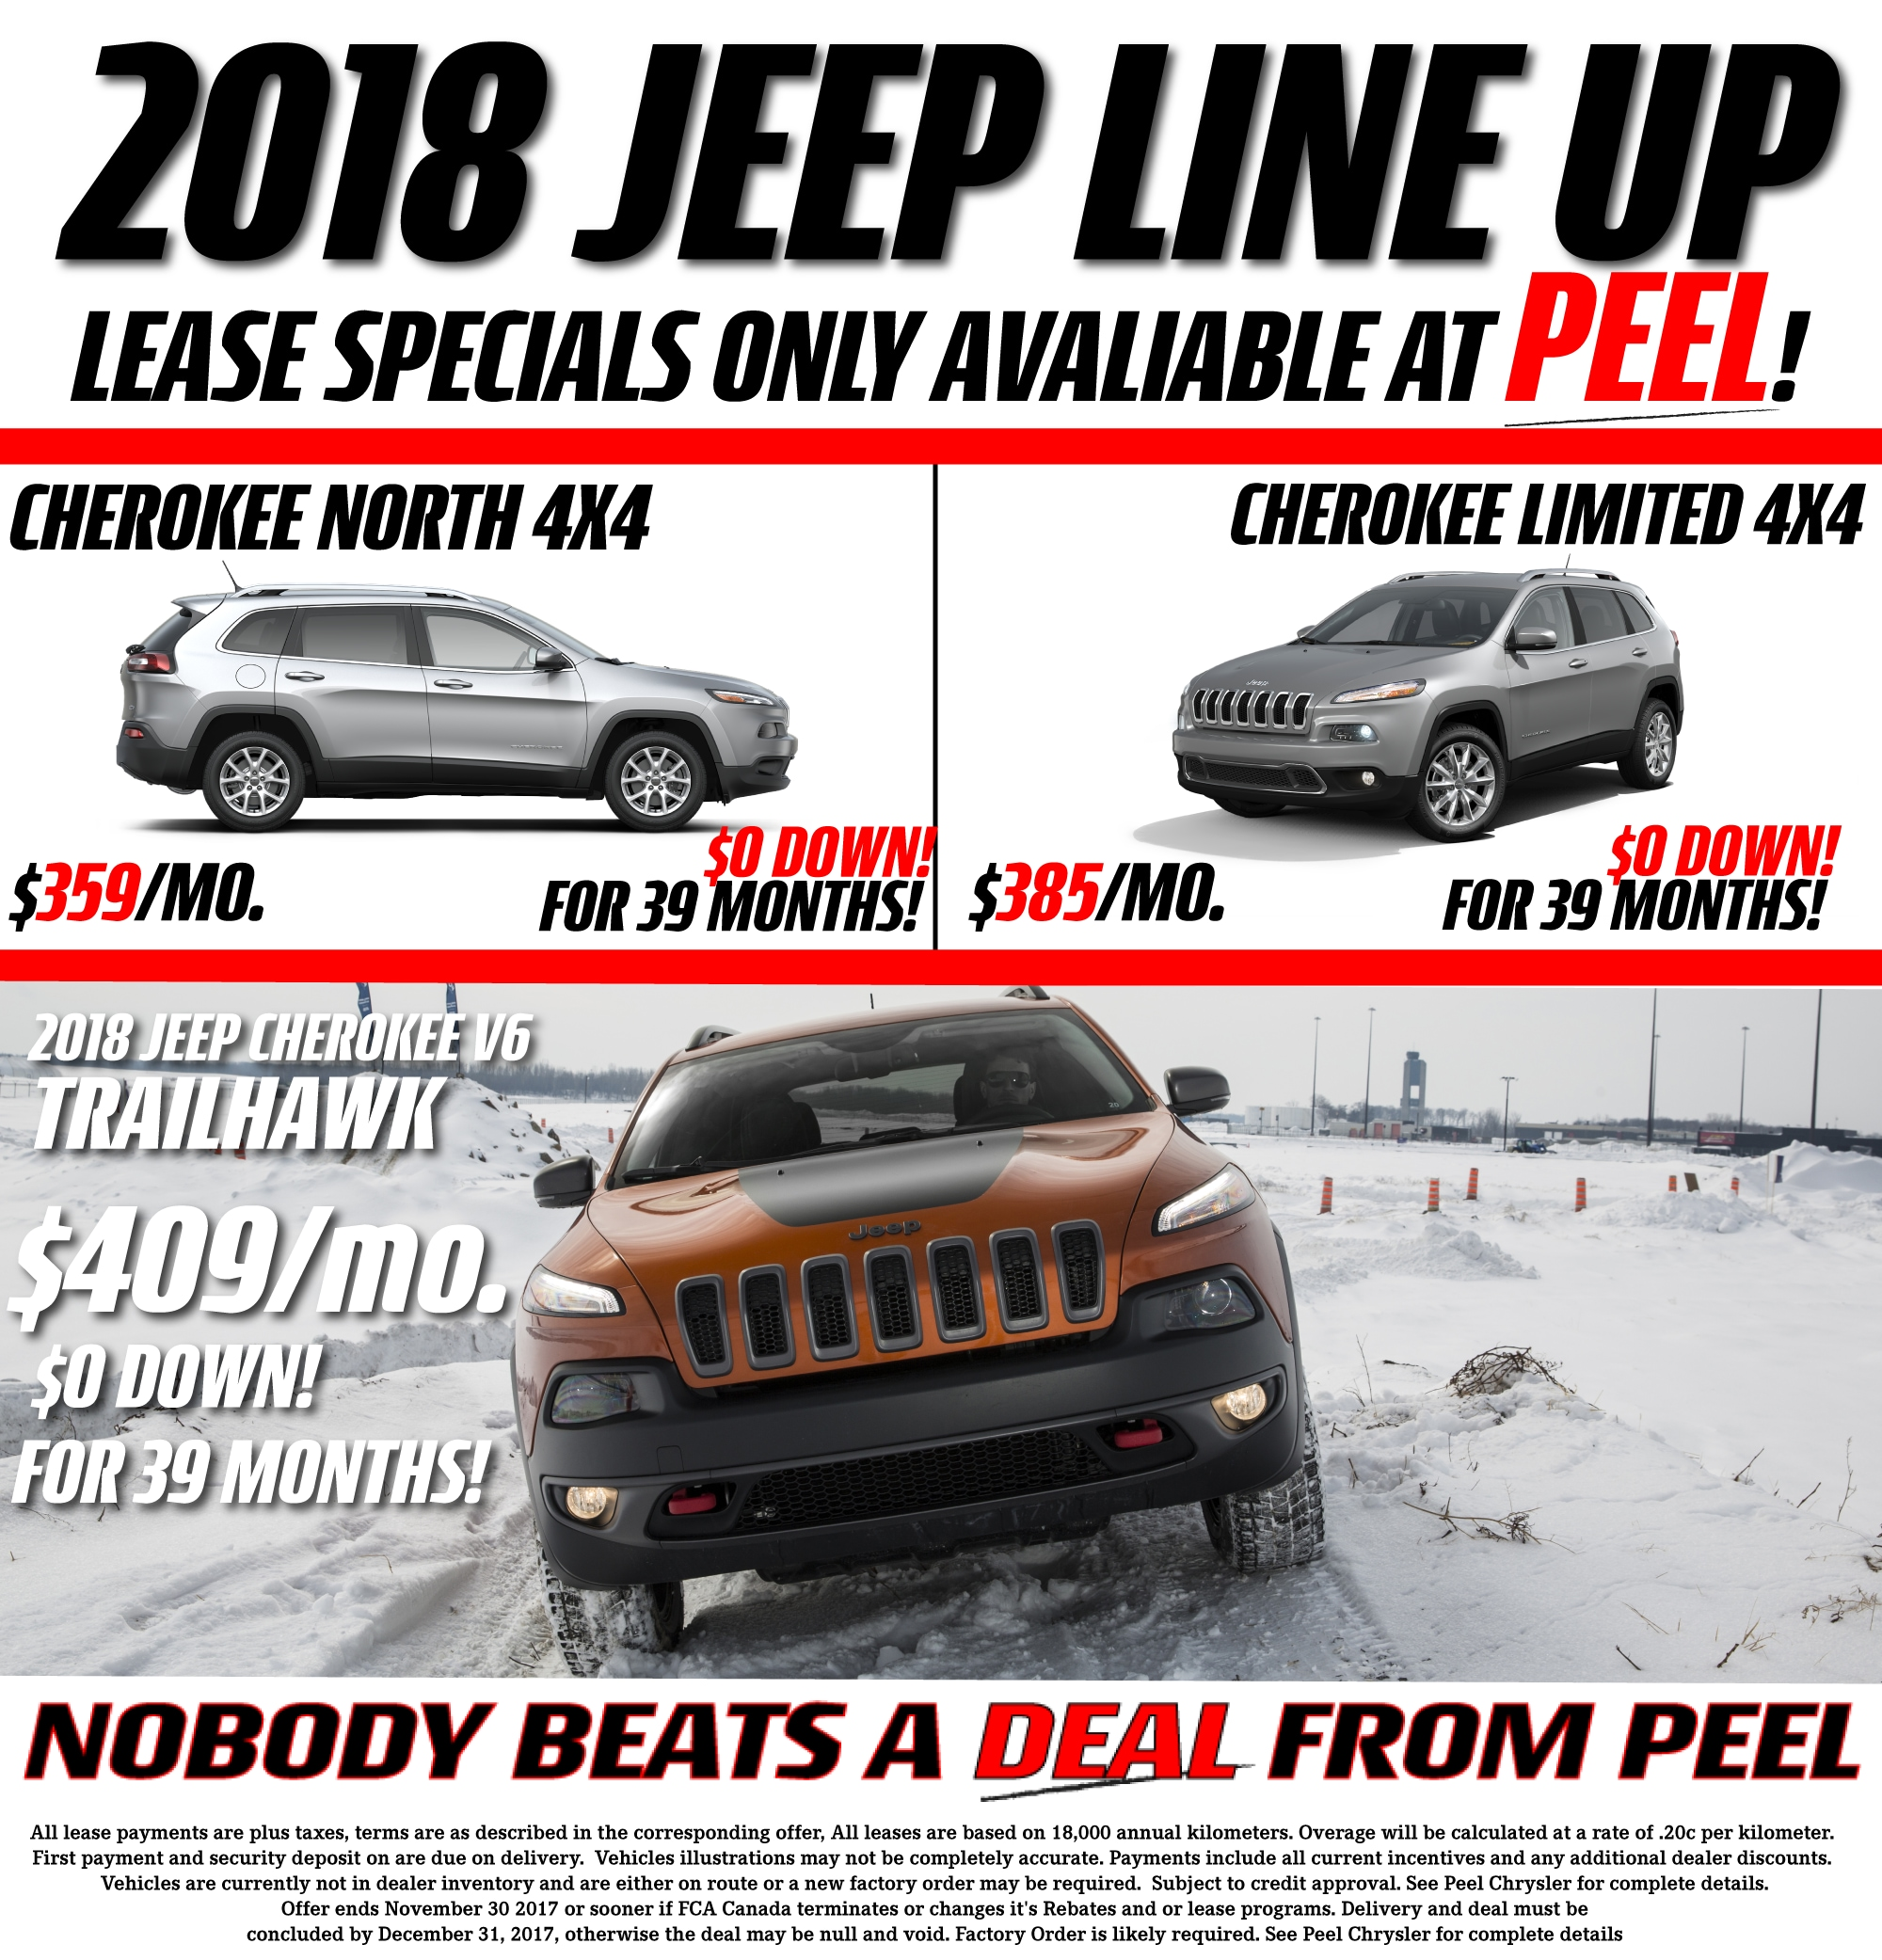 Toyota Employee Lease Program: Jeep Cherokee Lease Specials